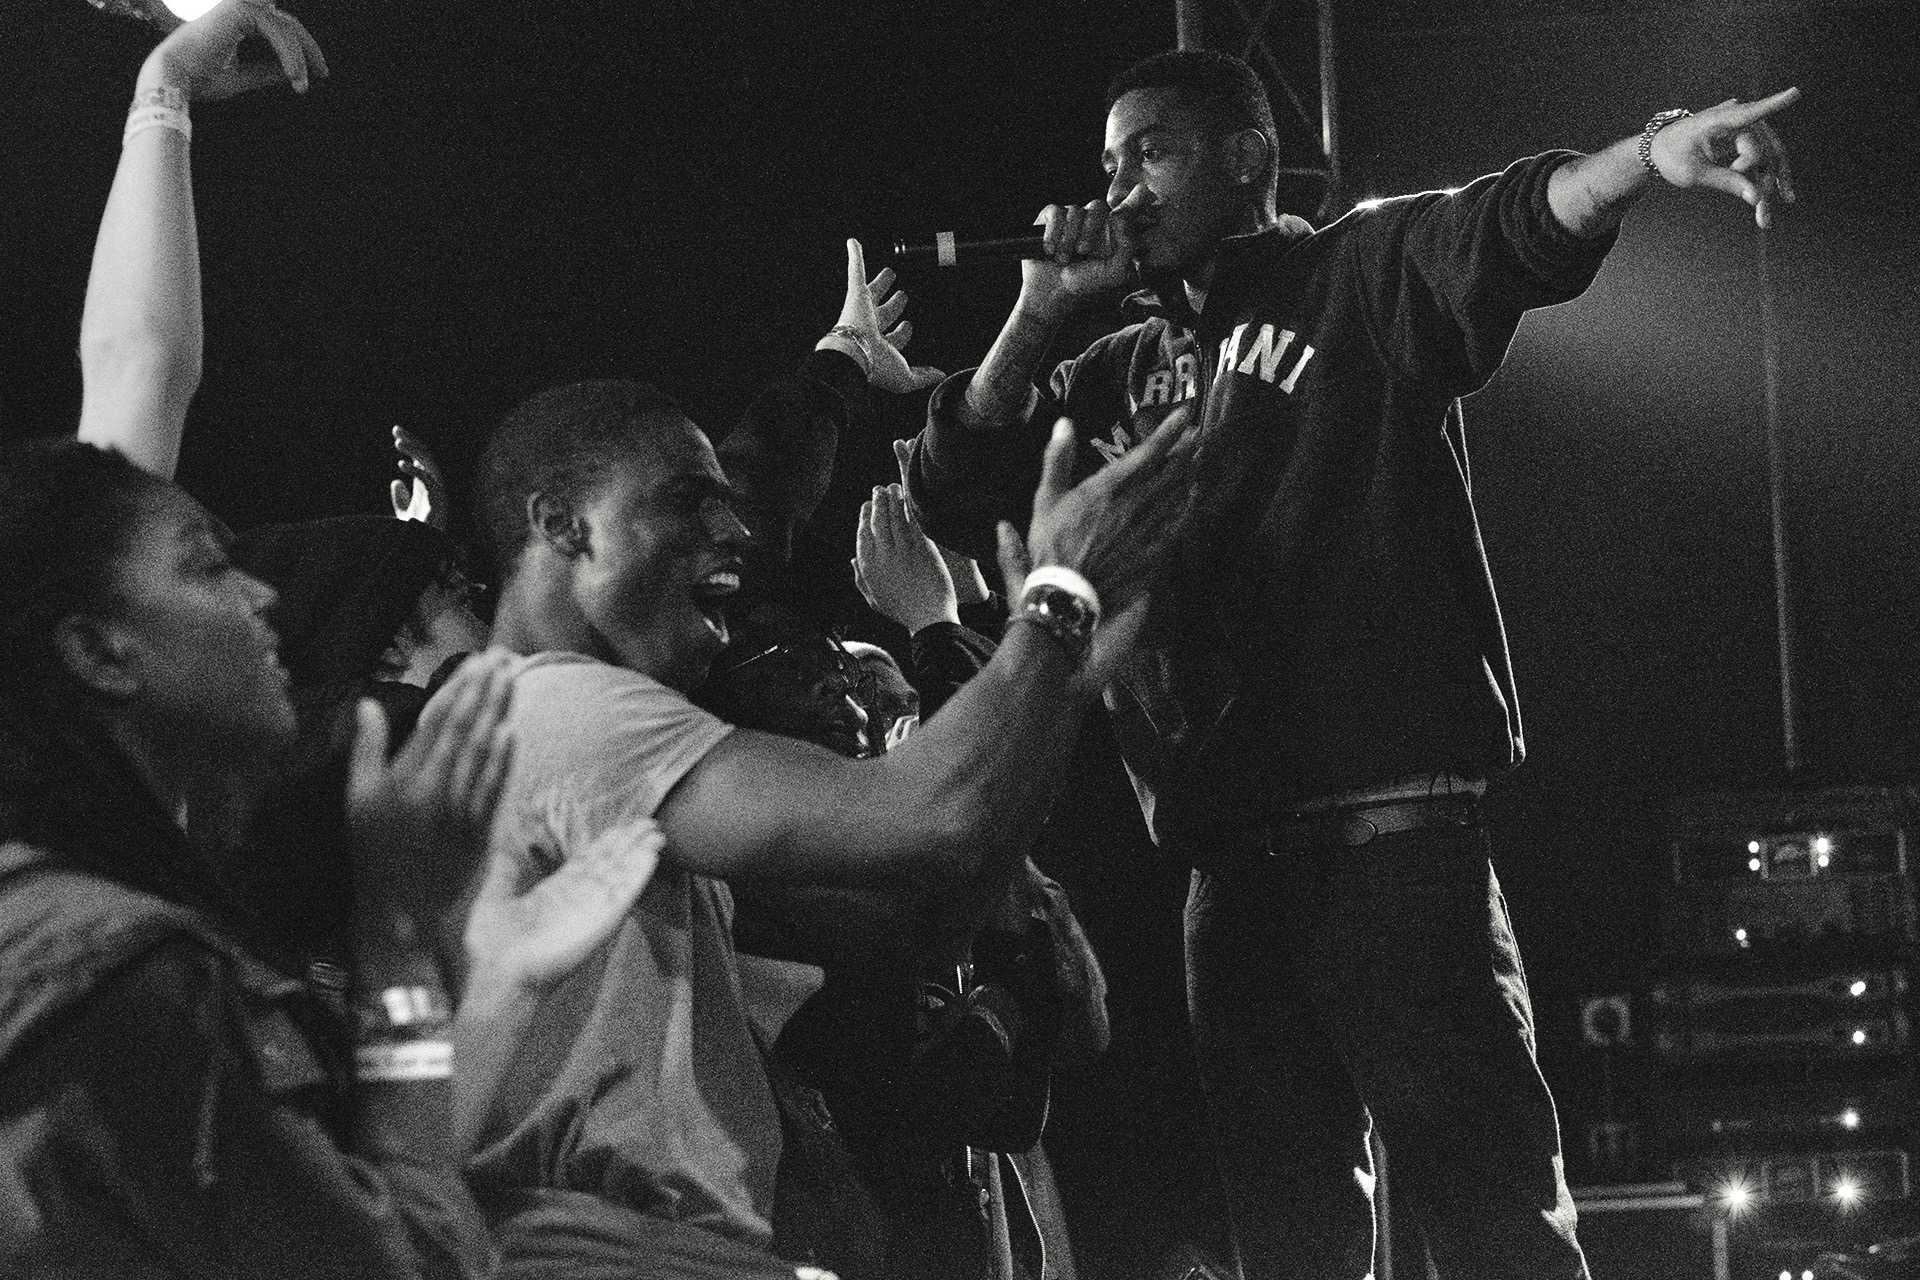 Sir Michael Rocks of The Cool Kids Performs at Blue Moose on Friday April 7th, 2017. The Cool Kids reunited in July 2016 after a hiatus beginning in 2012. (The Daily Iowan/Nick Rohlman)